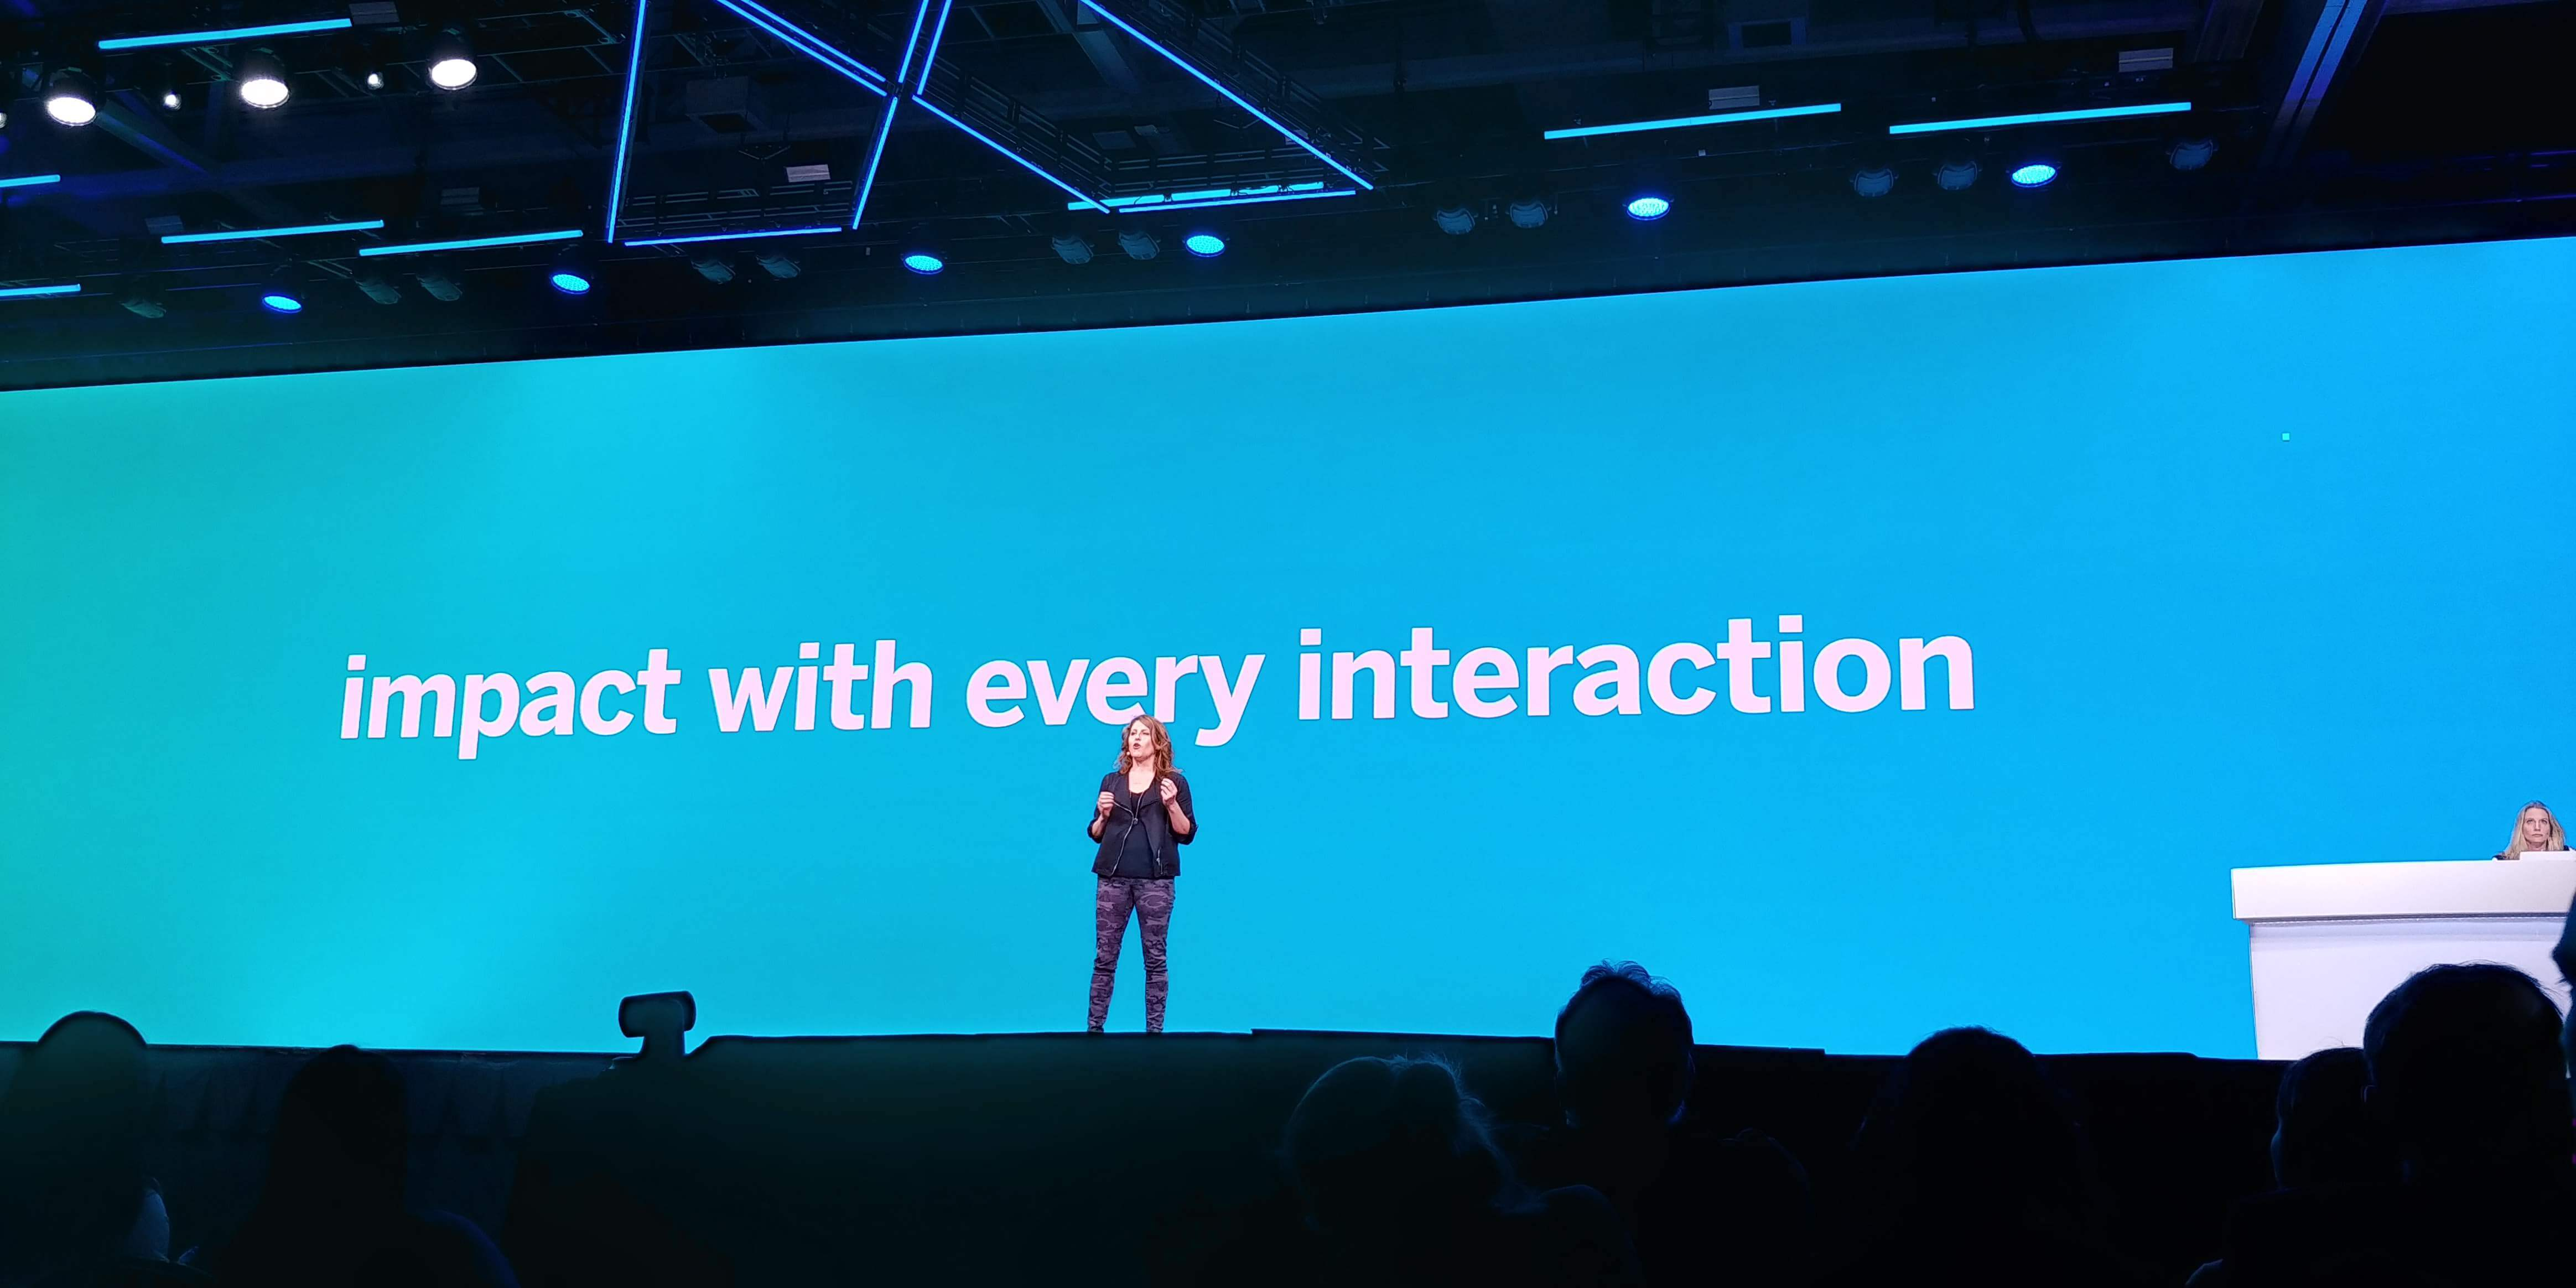 Check out all the customer experience innovations from X4 2019